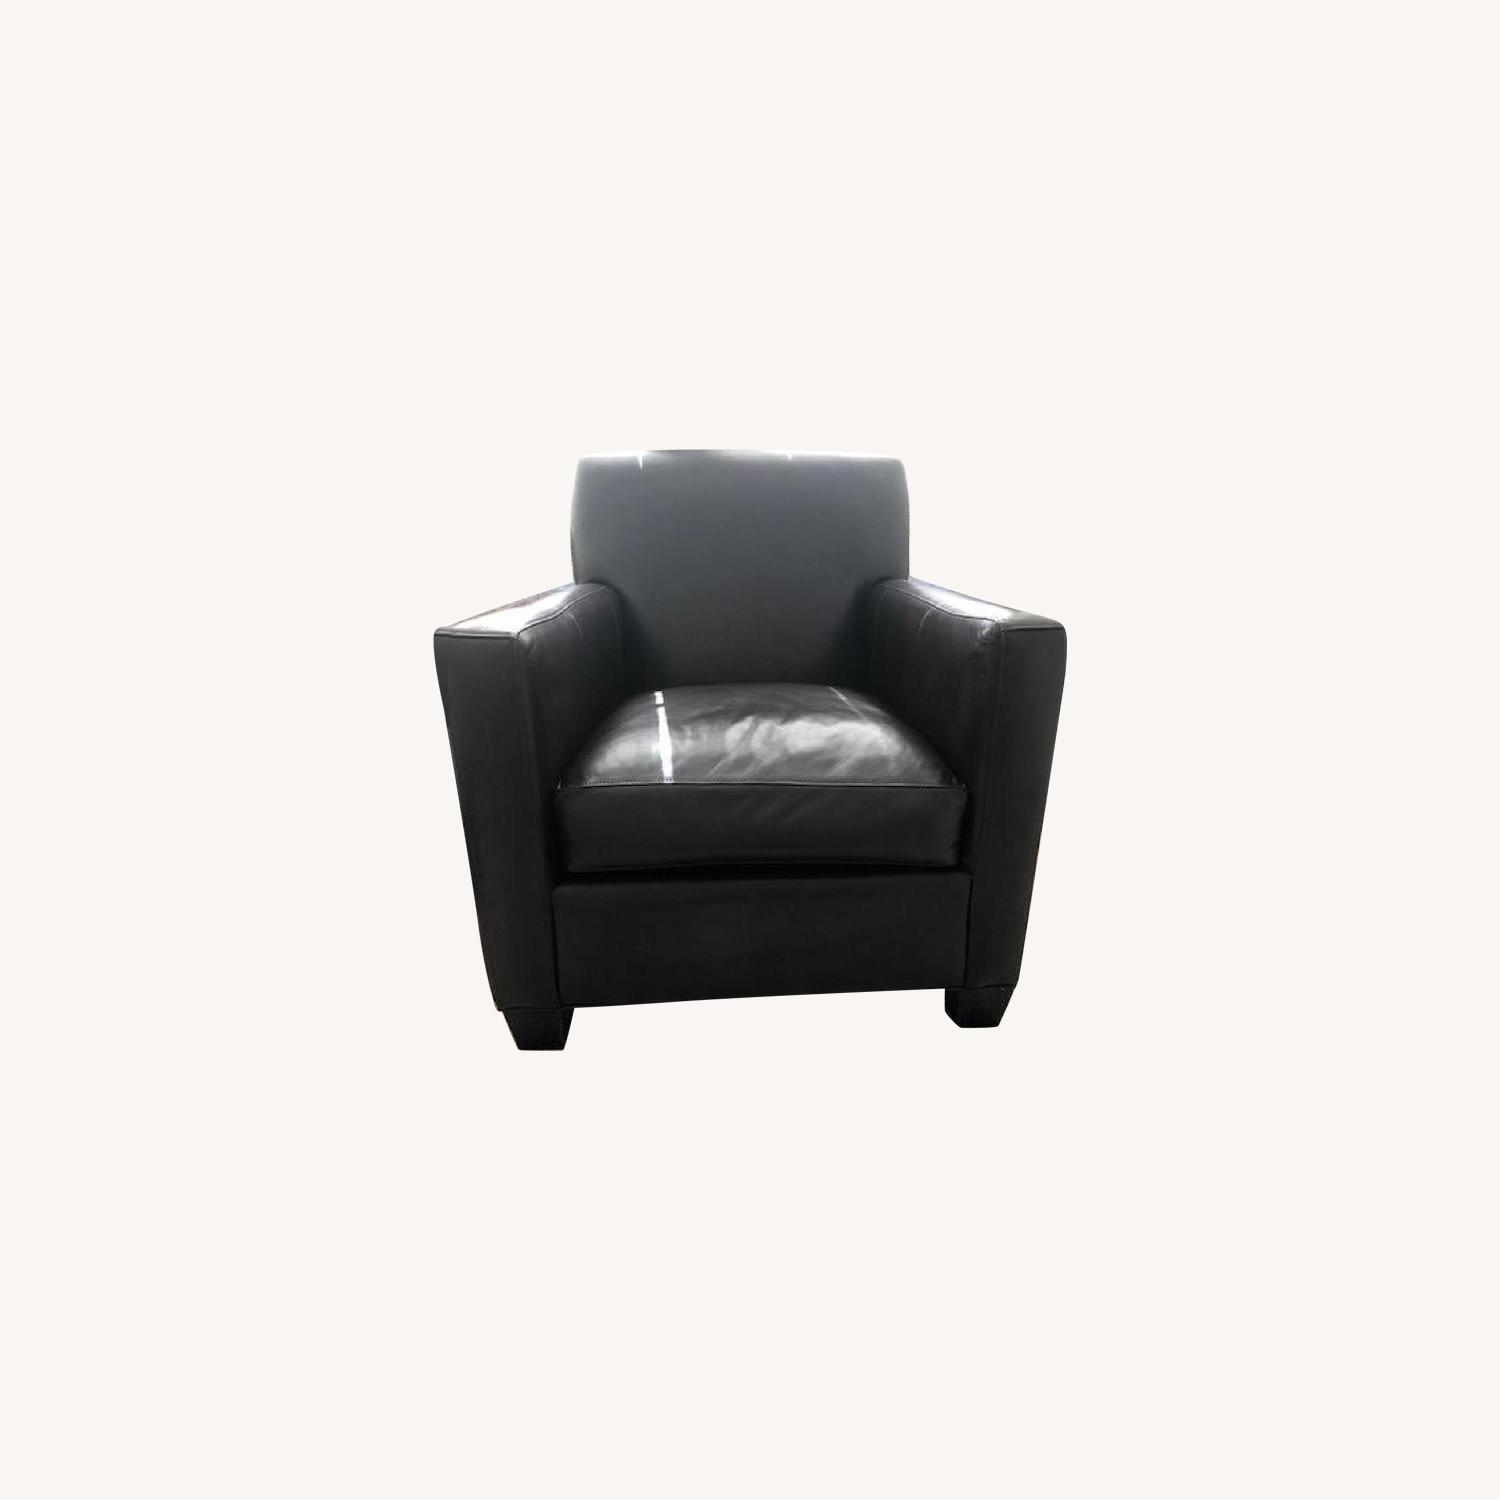 Crate & Barrel Leather Club Chair - image-8